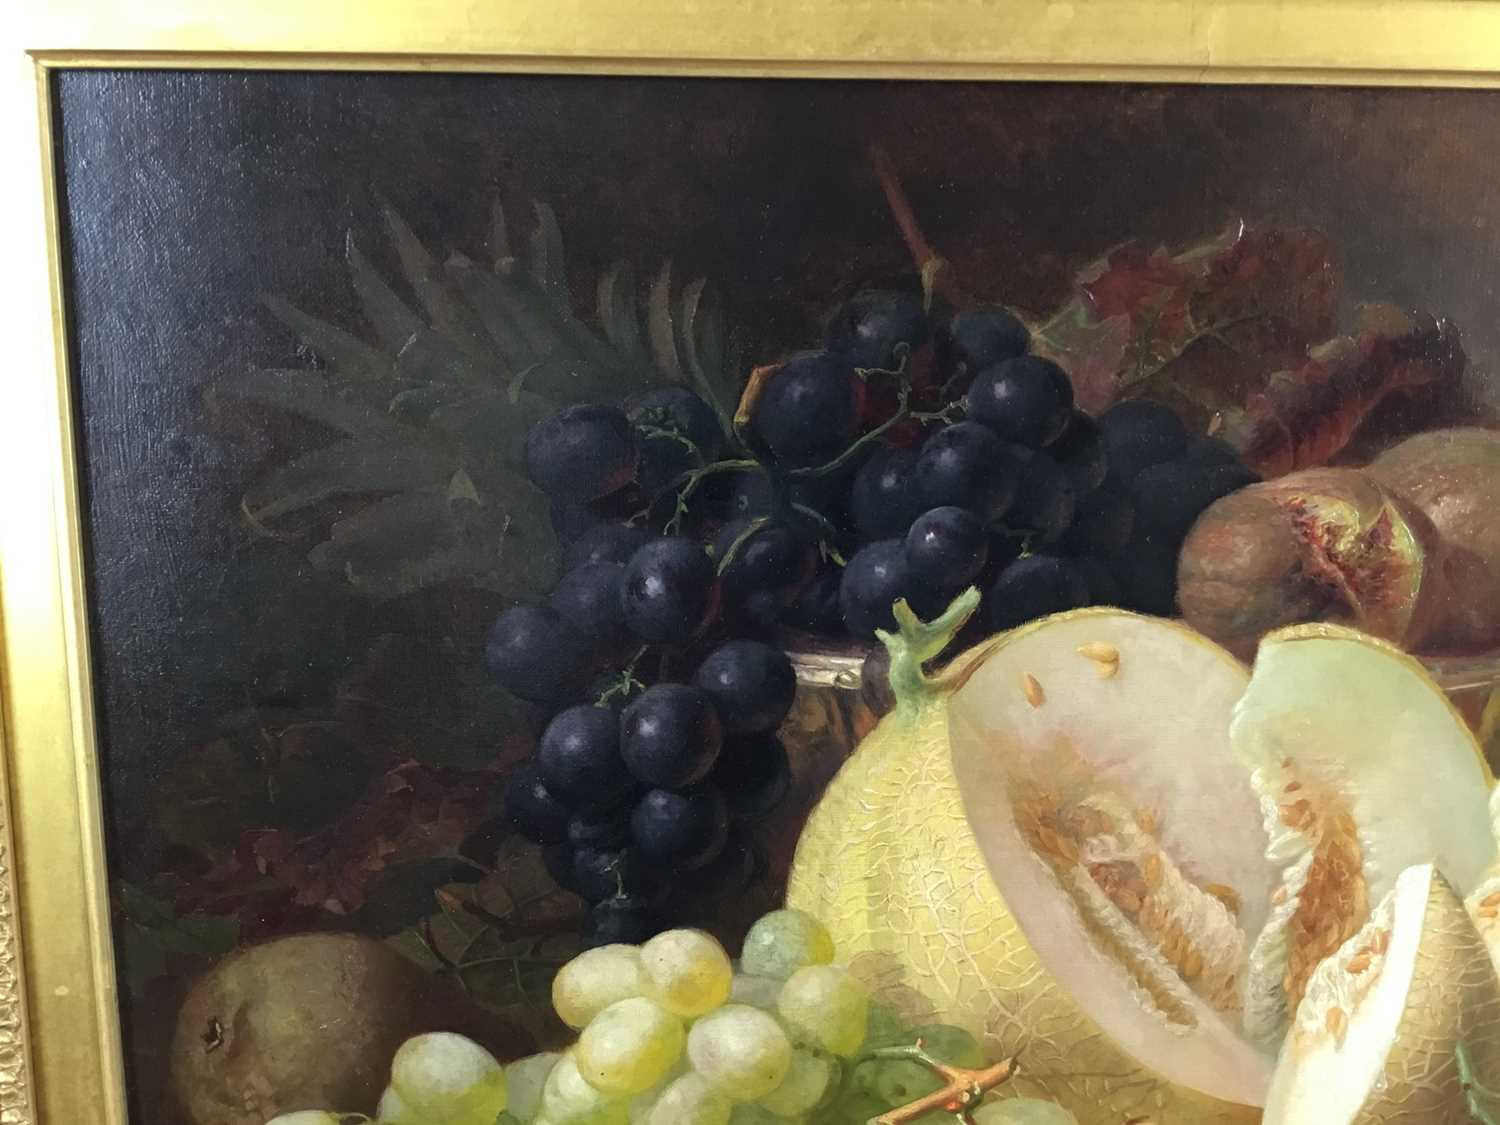 Eloise Harriet Stannard (1828-1915) oil on canvas, Peaches and grapes - Image 3 of 10